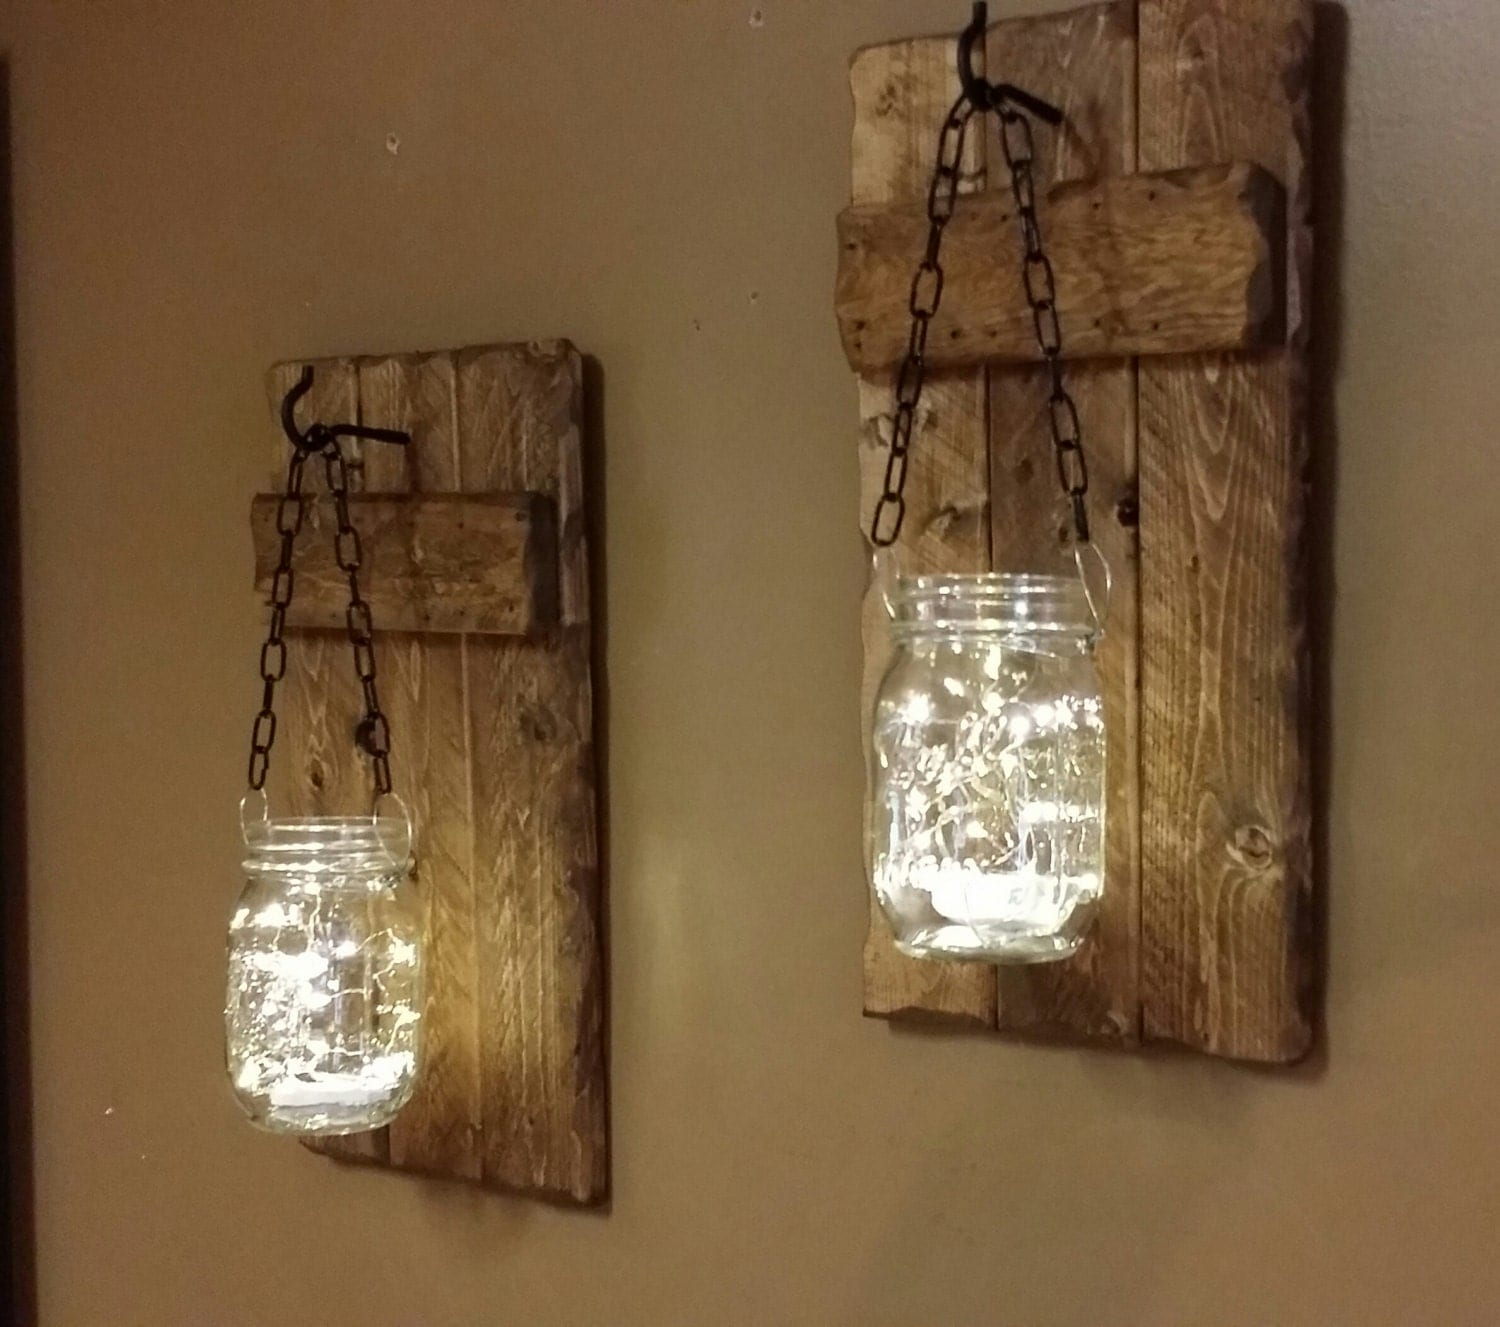 How To Hang Wall Sconces For Candles : Rustic Candle holders hanging Mason jars set of sconces